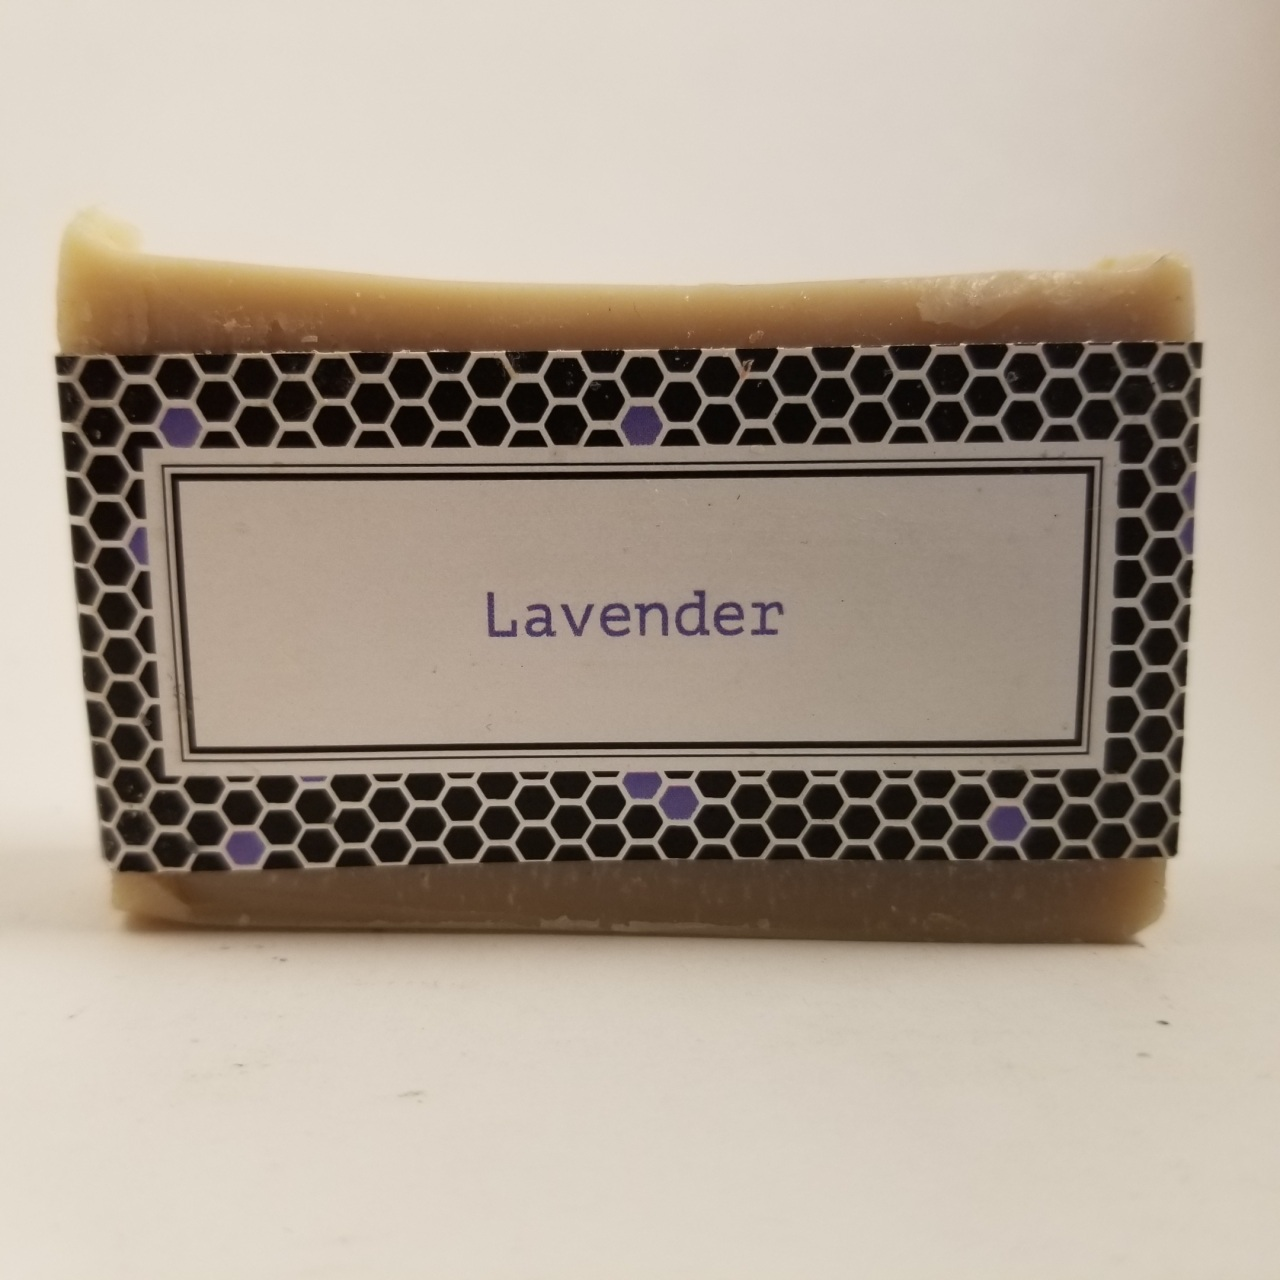 Lavender Beeswax Soap